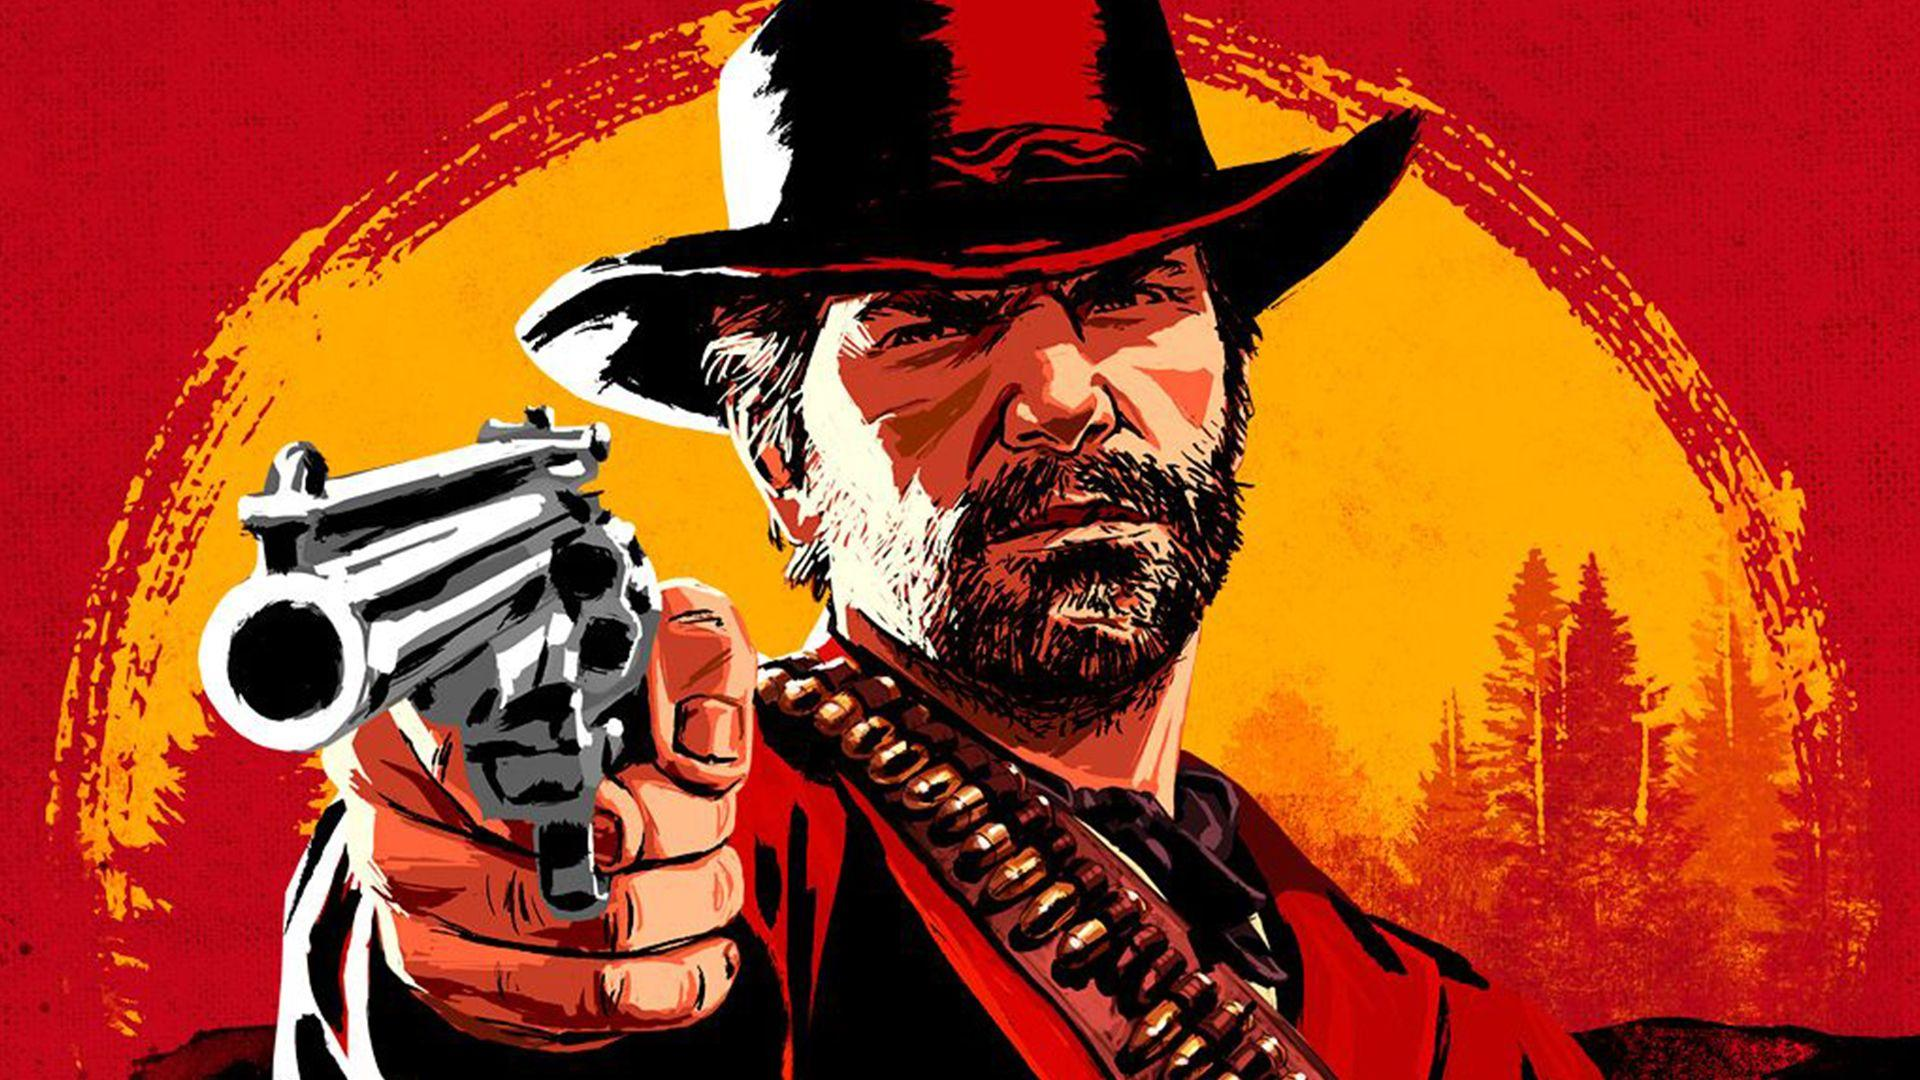 Red Dead Redemption 2 4K Wallpapers - Wallpaper Cave